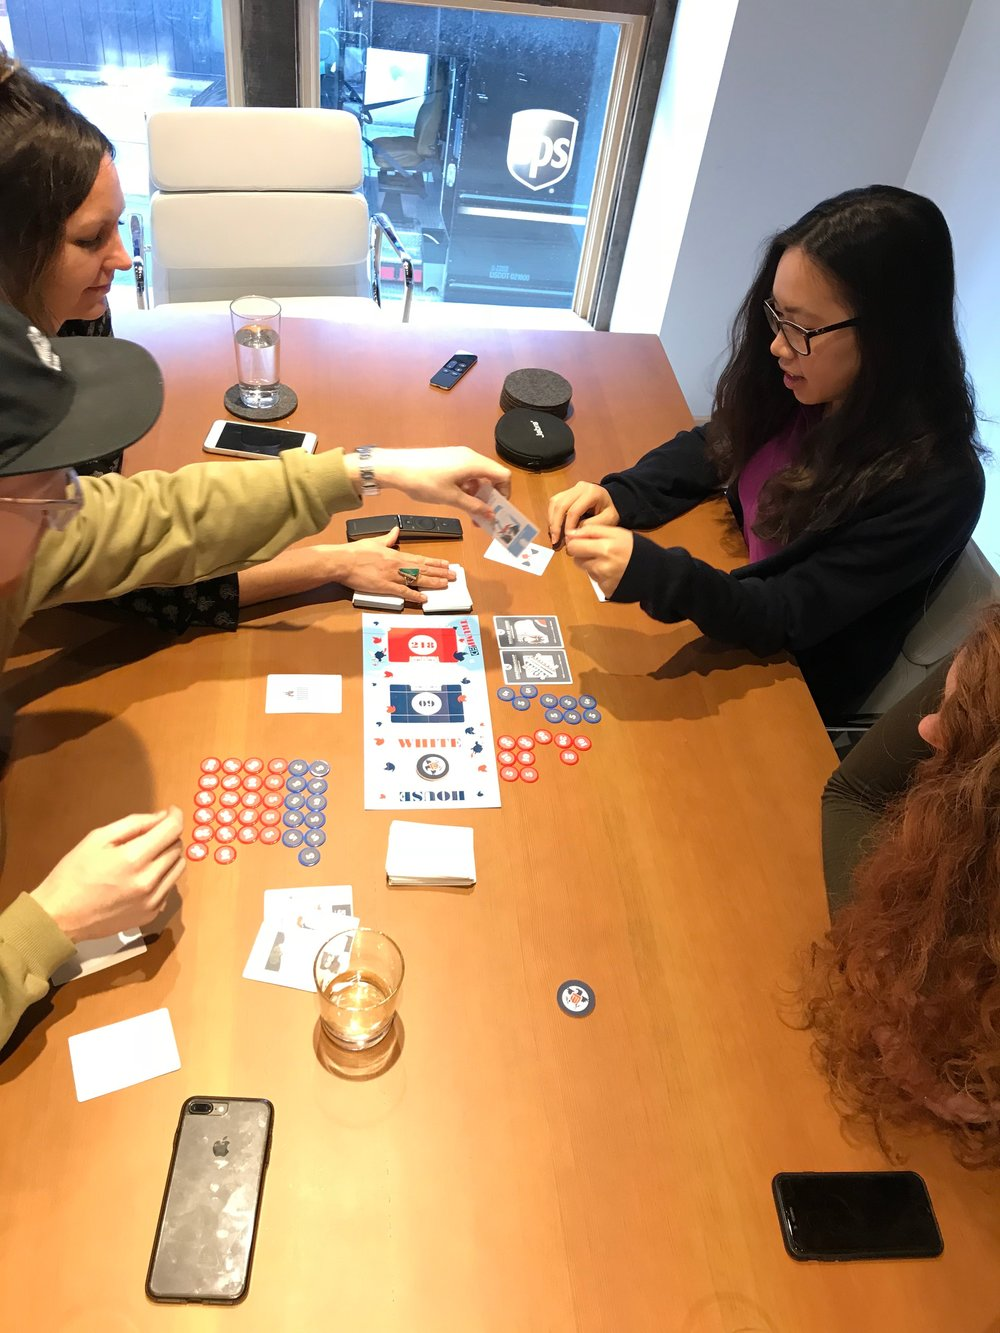 Team play testing early stage prototype